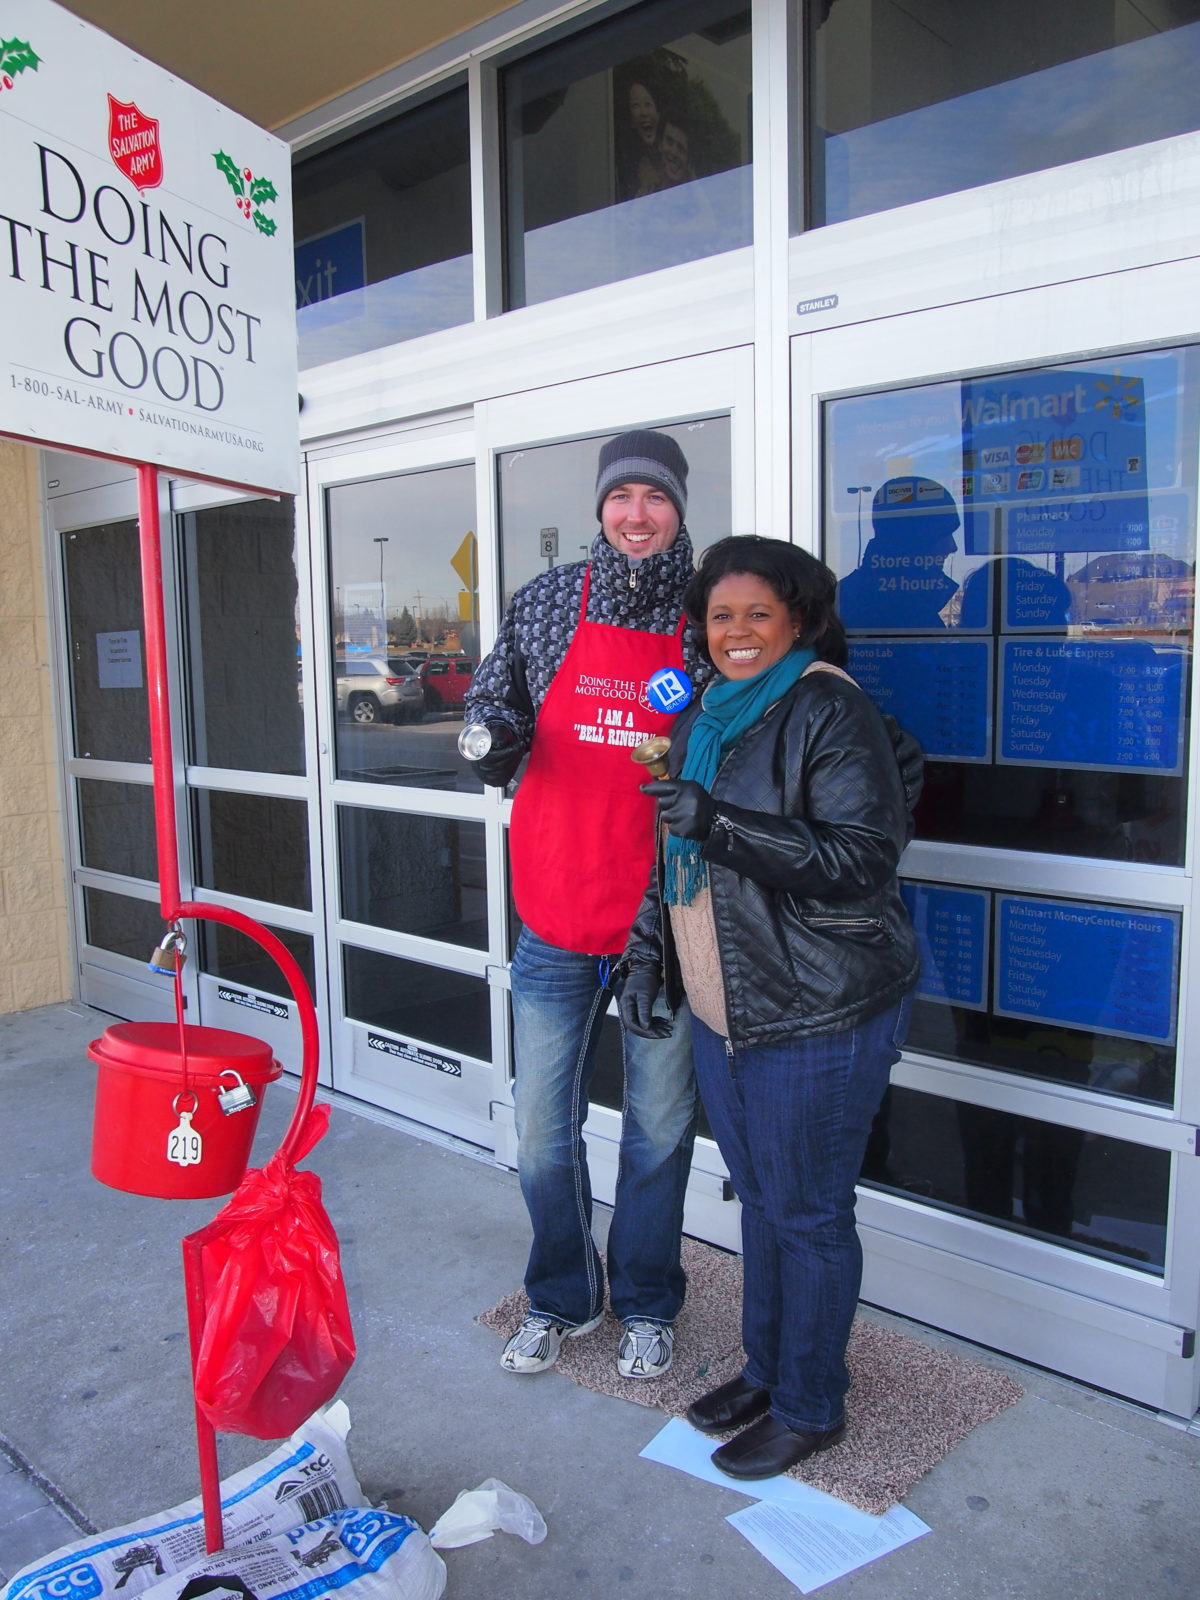 Husker Home Finders, Bell Ringing Volunteer, Salvation Army Omaha, NP Dodge